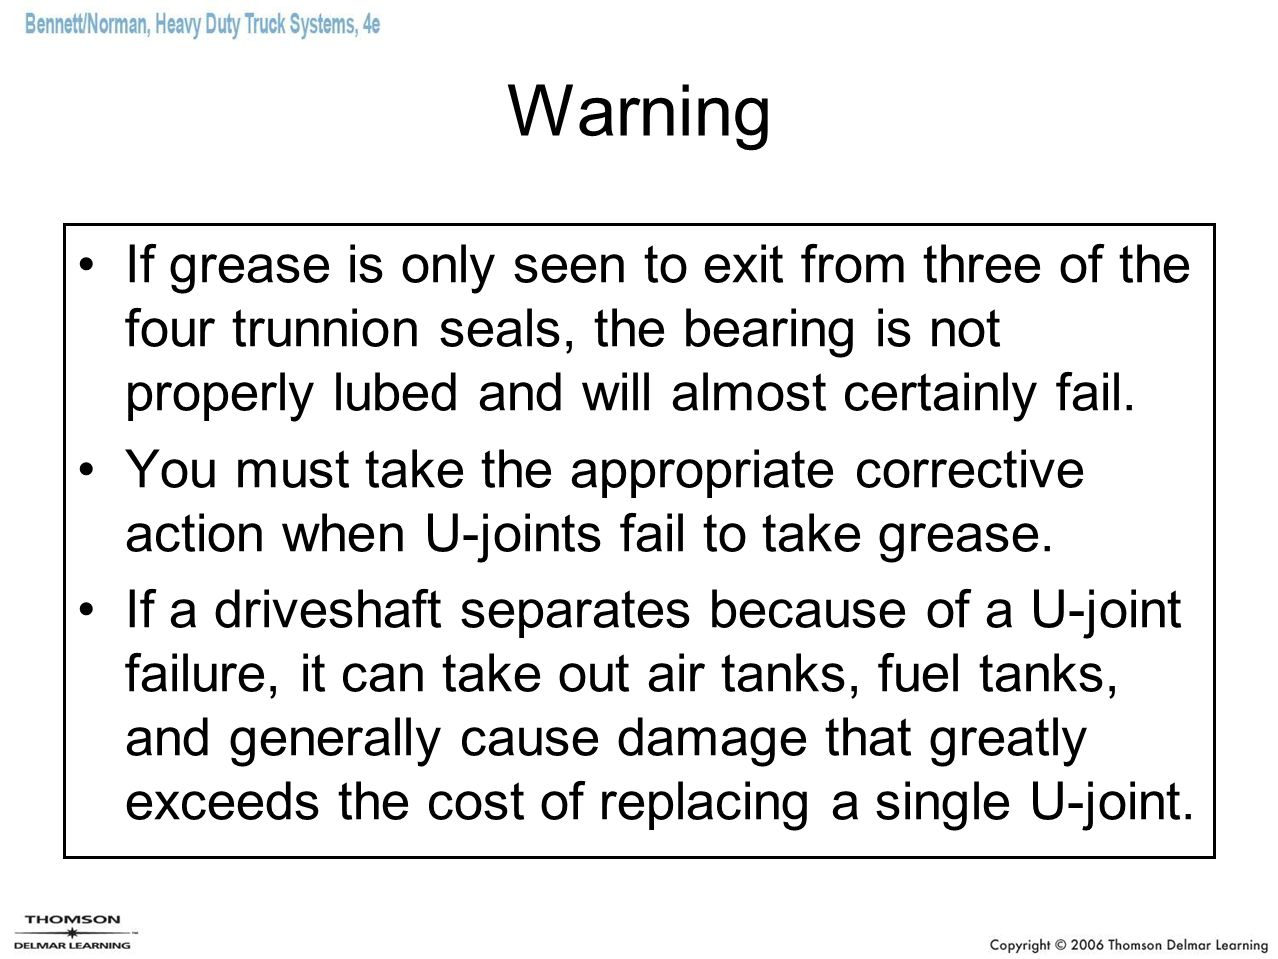 Warning If grease is only seen to exit from three of the four trunnion seals, the bearing is not properly lubed and will almost certainly fail.